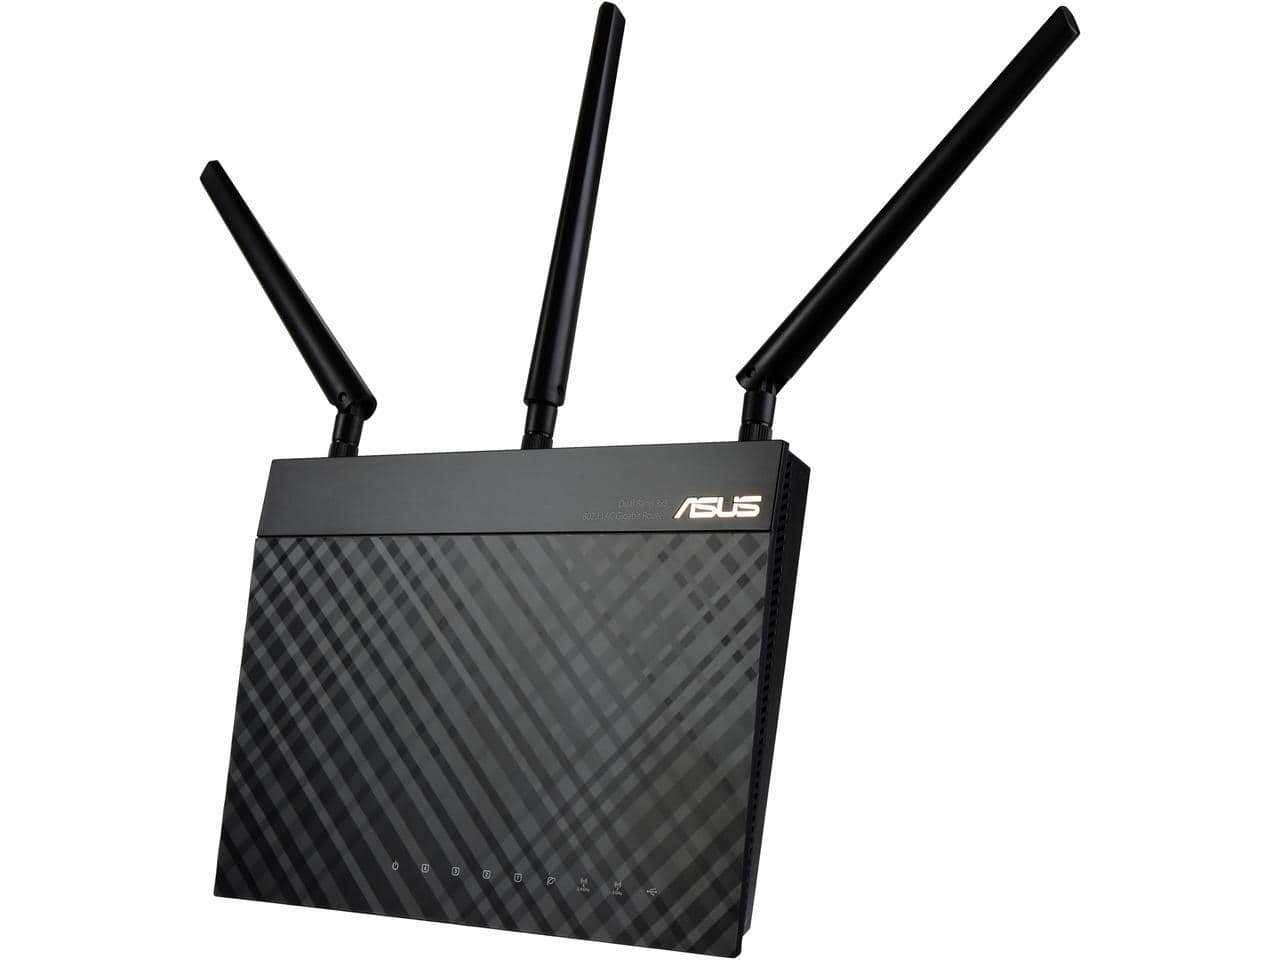 Refurb TP-Link Archer C1900 AC1900 High Power Wireless Dual Band Gigabit Router